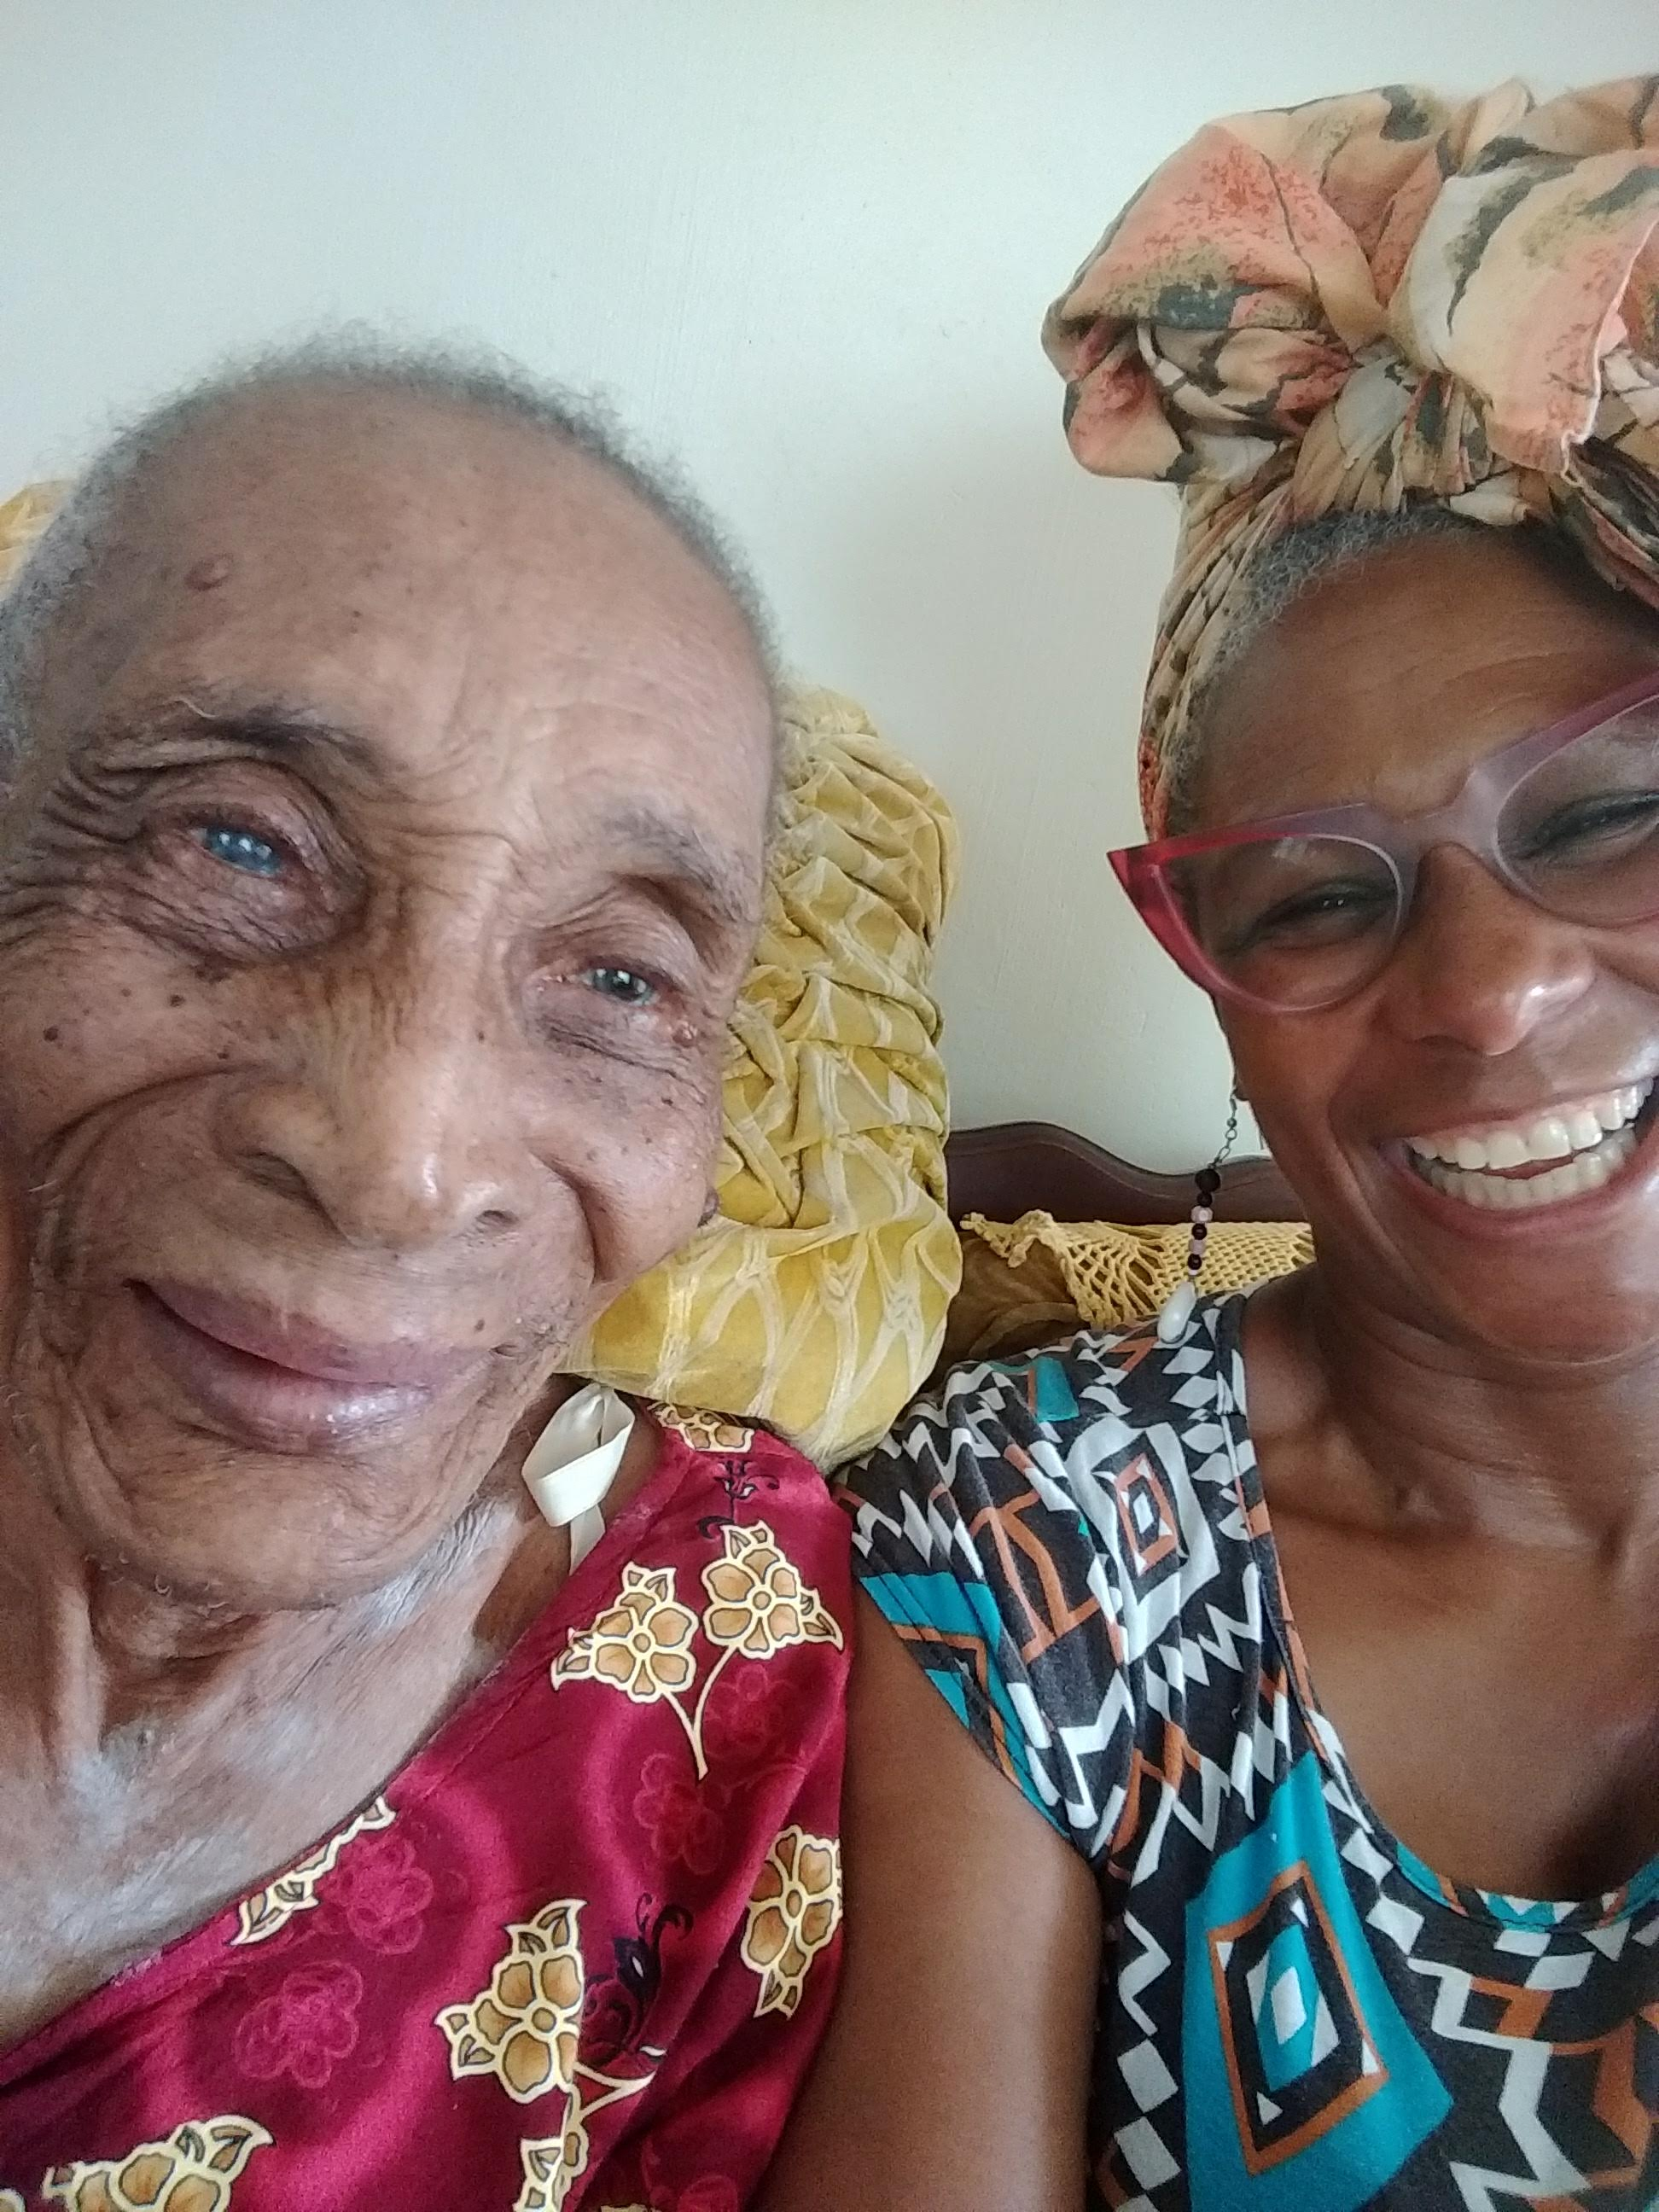 A two week break in Barbados meant I could spend some quality time with family and friends. Here is Aunt Ev who is a sprightly 100 years old! September 2018.